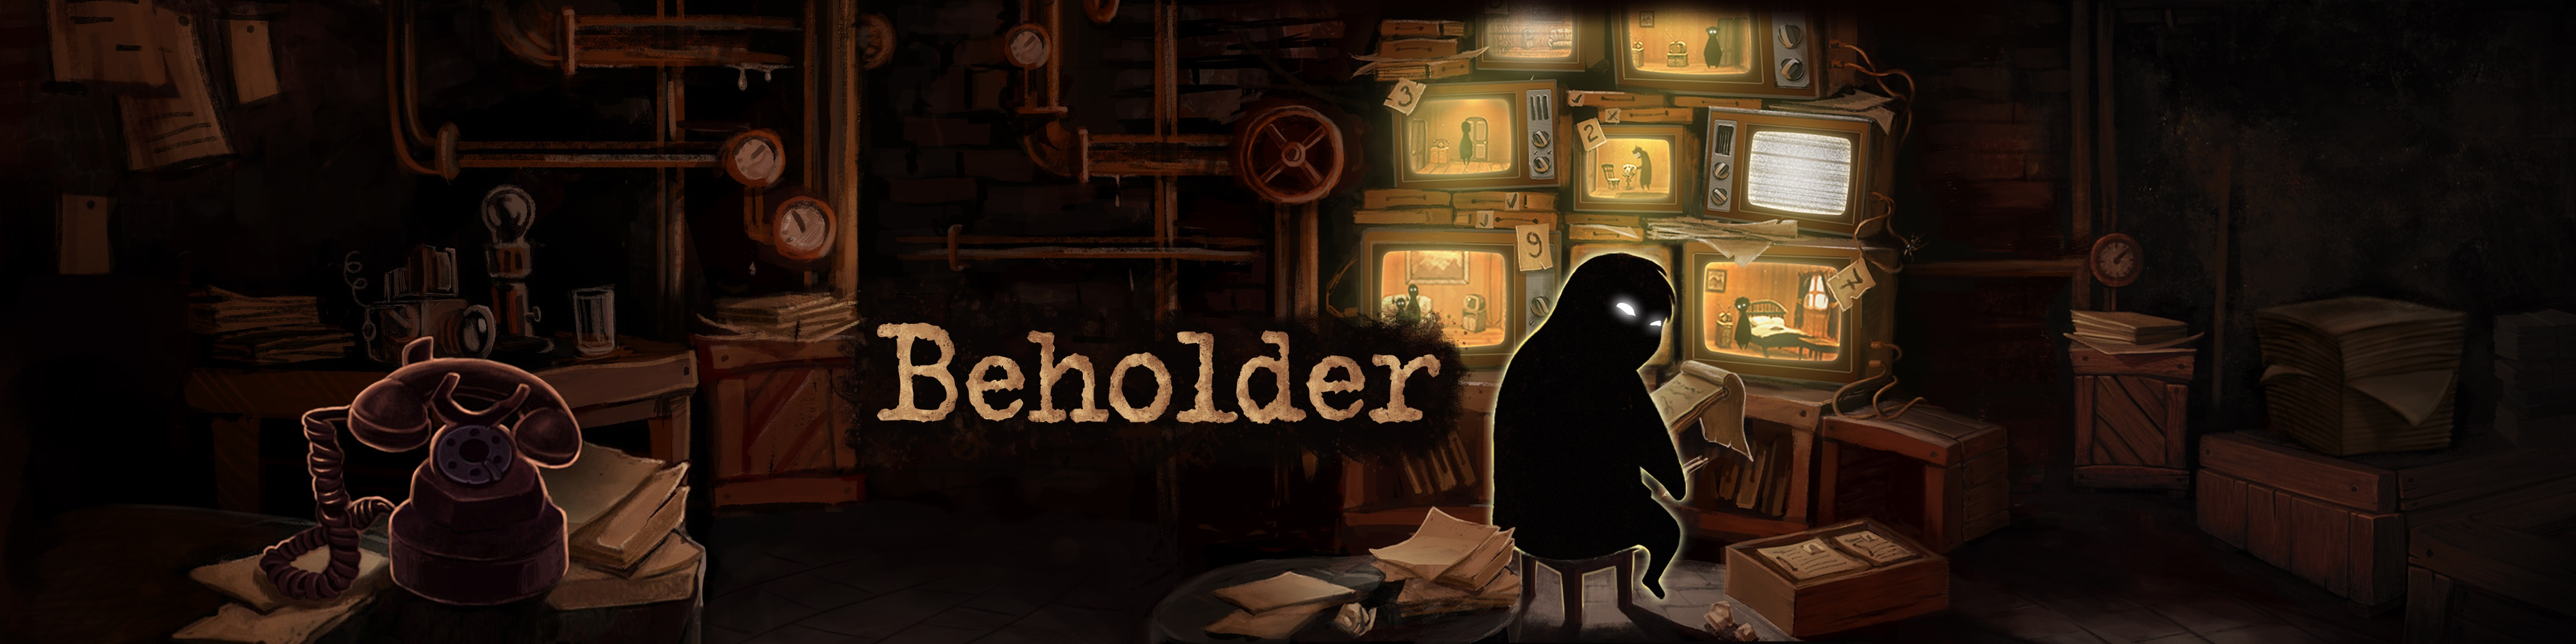 beholder_key_picture_01